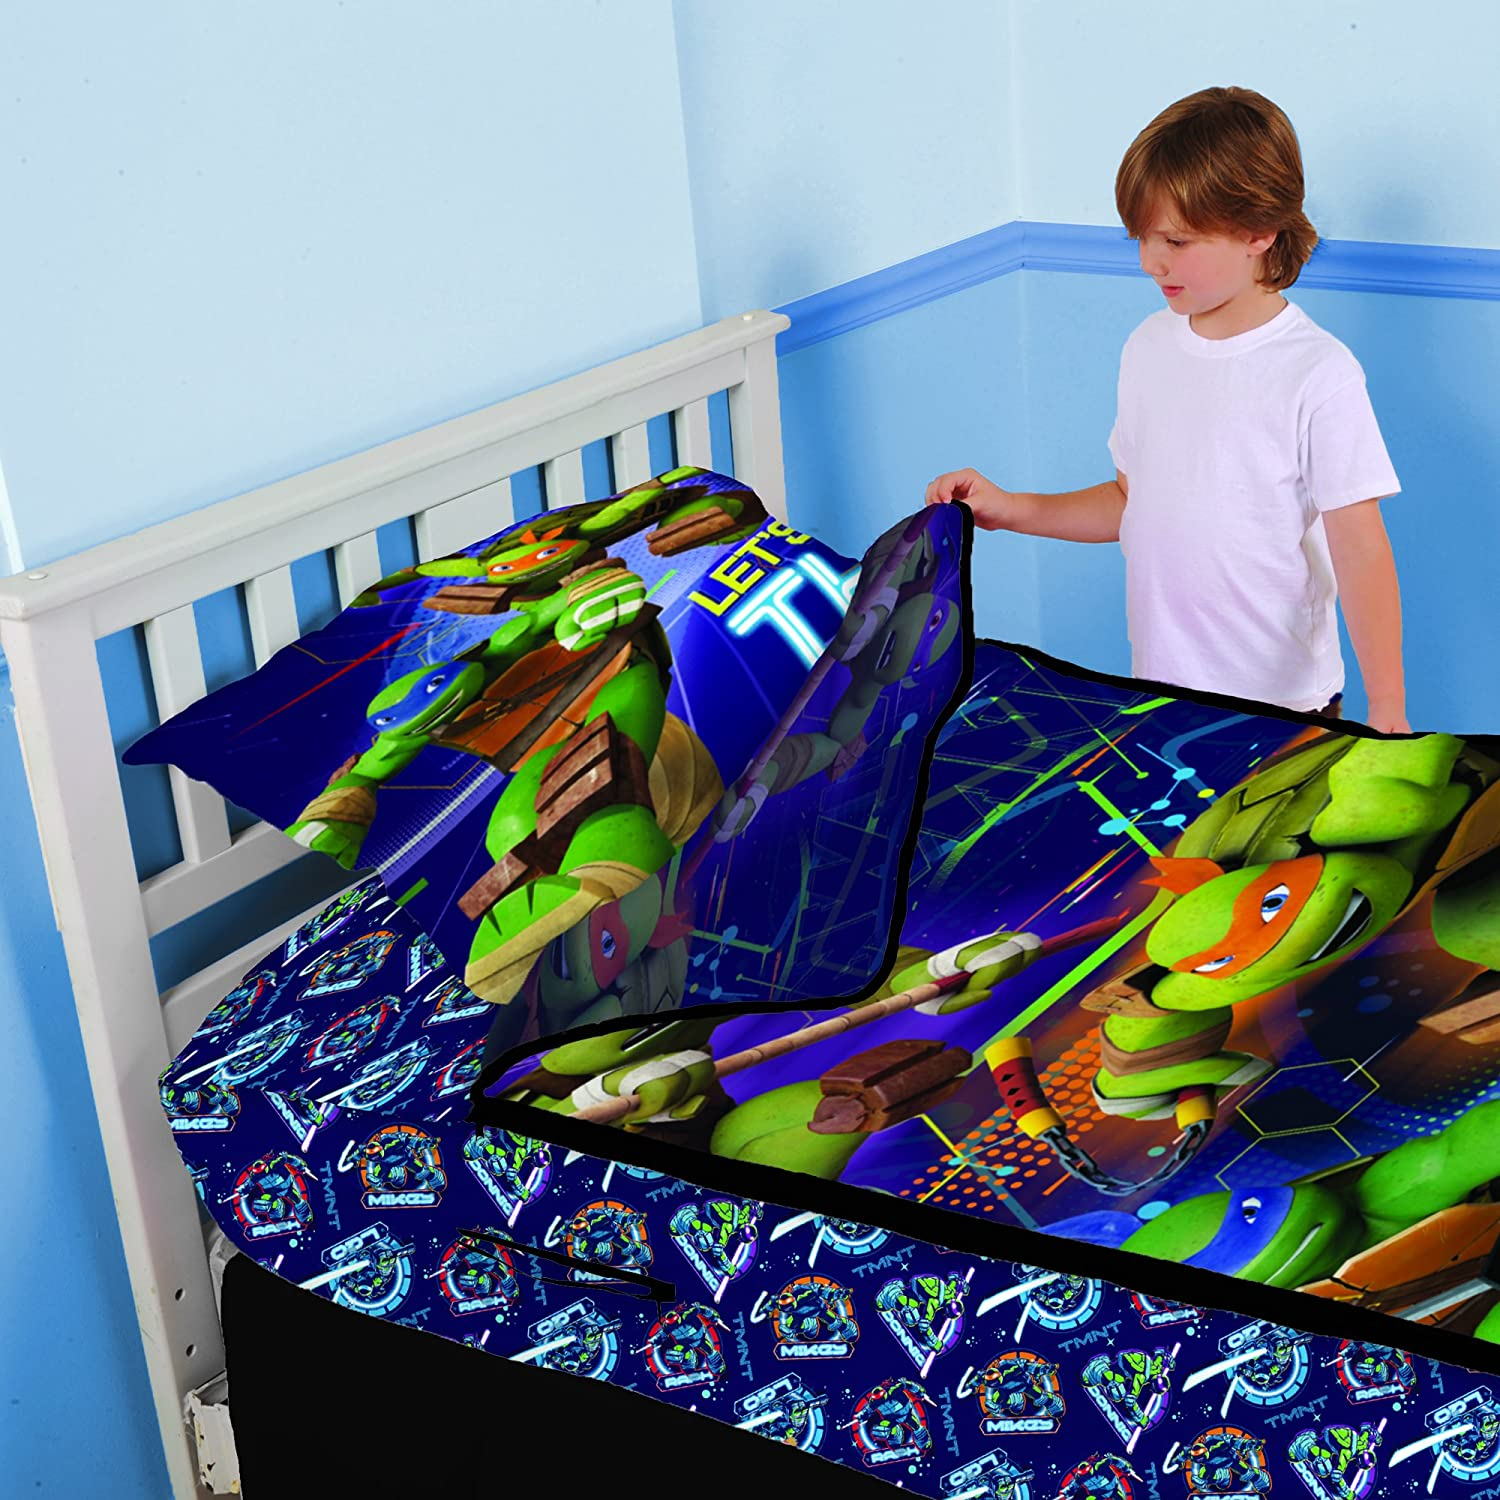 Nickelodeon MY0118 Teenage Mutant Ninja Turtles Primetime Zip-It Bedding